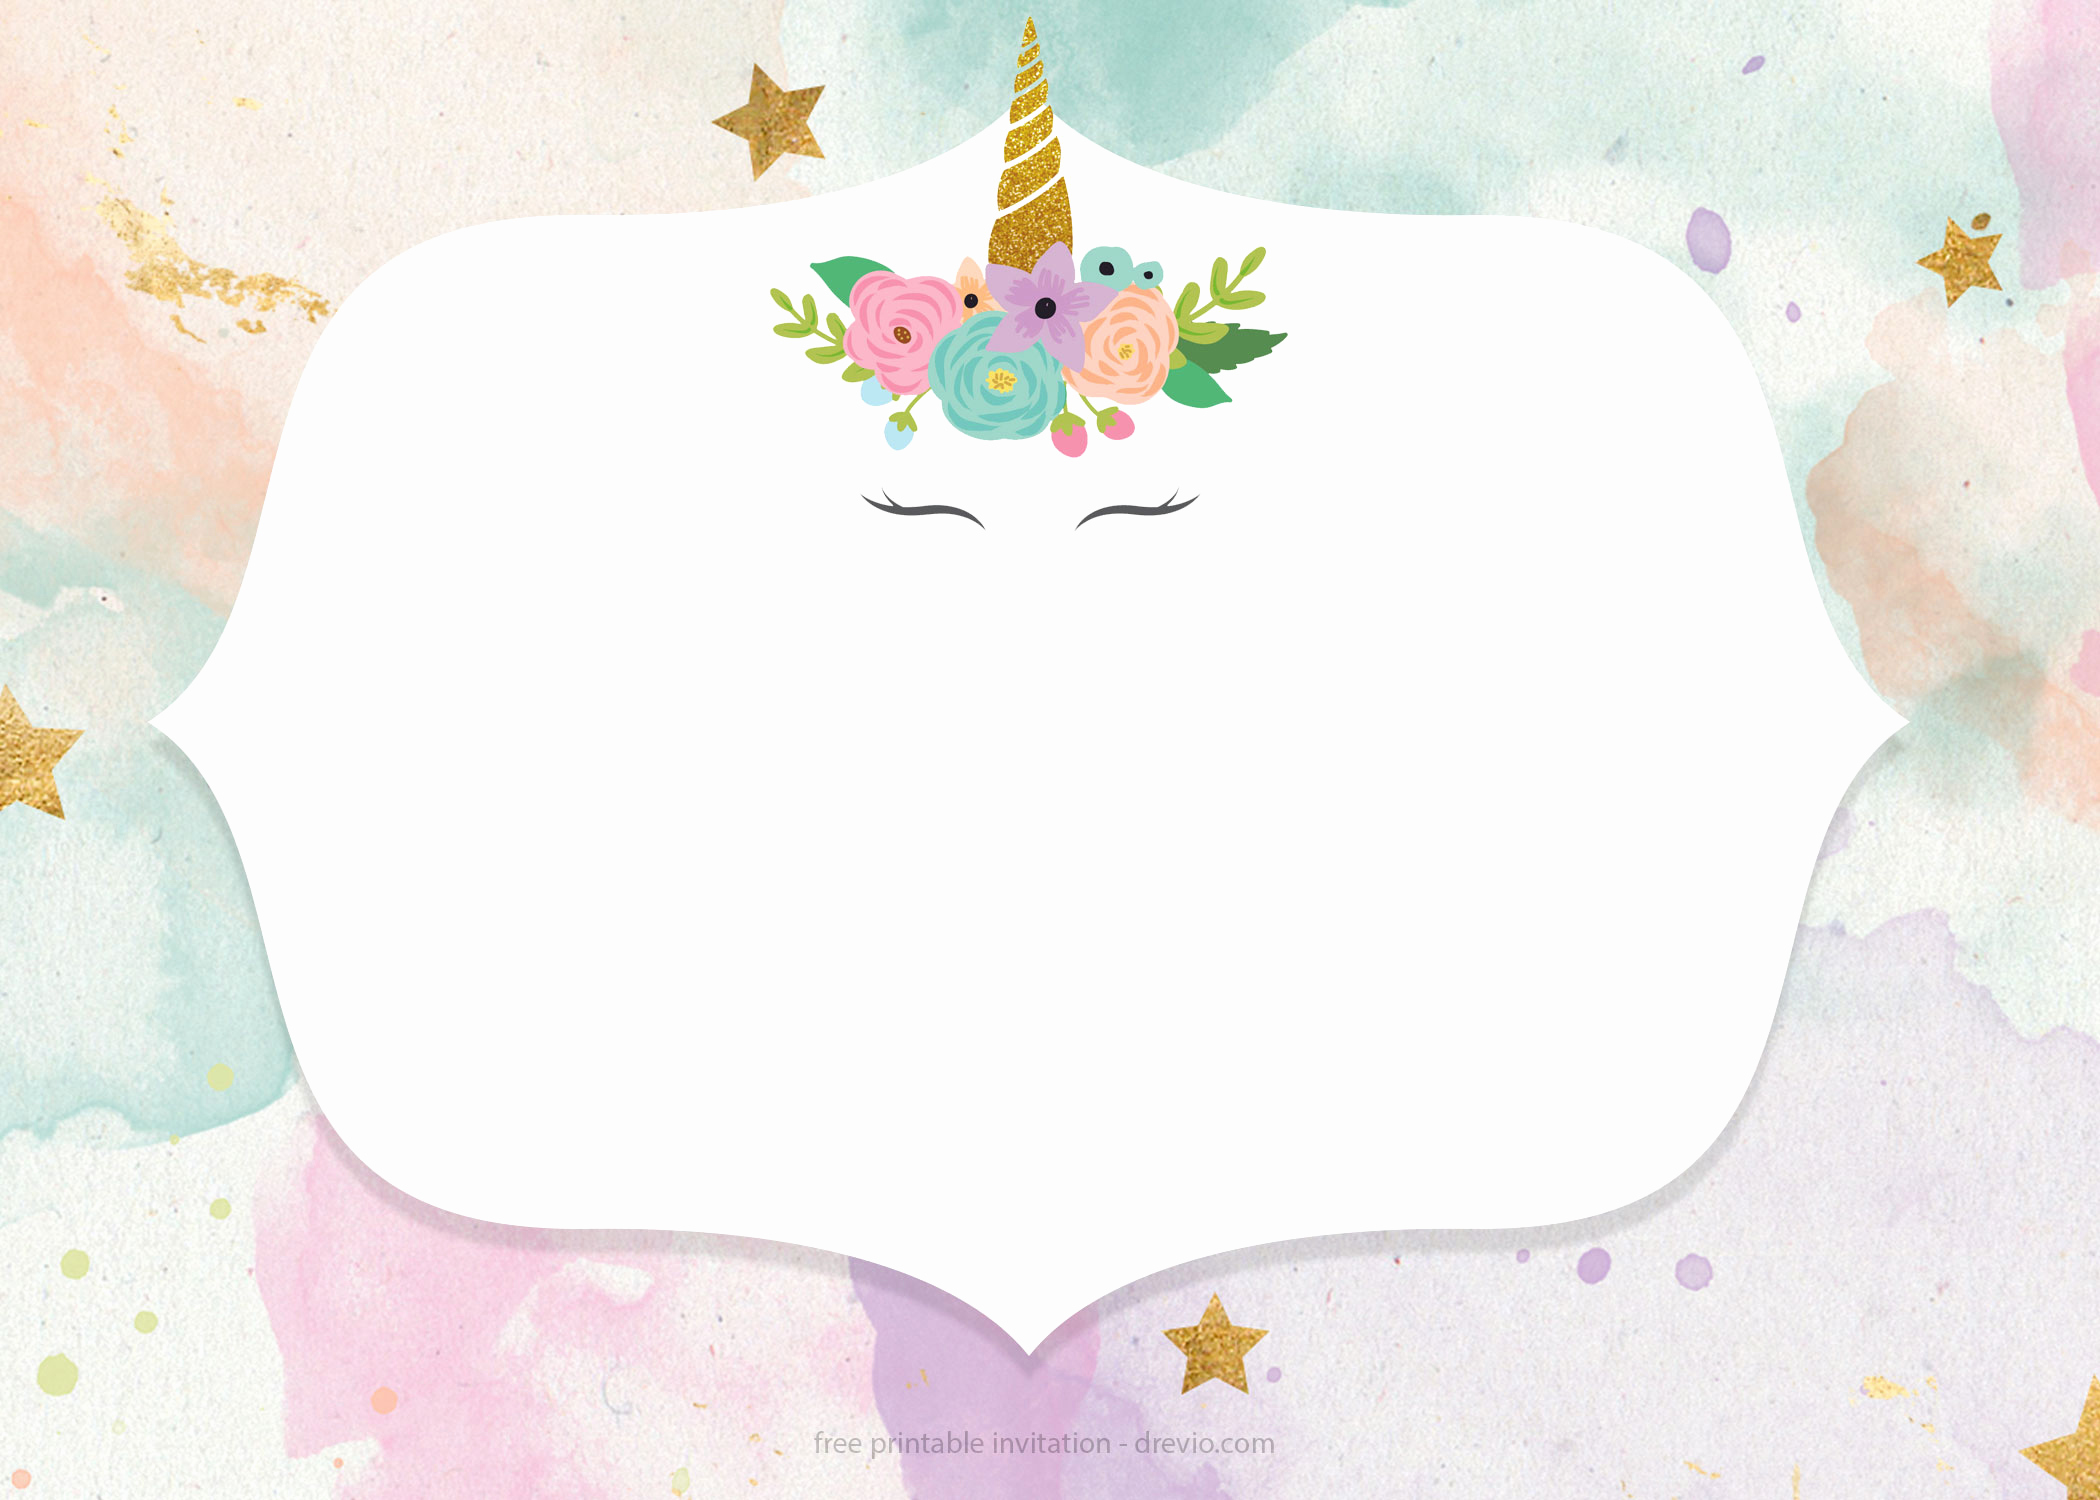 Unicorn Birthday Invitation Templates Inspirational Free Printable Golden Unicorn Birthday Invitation Template